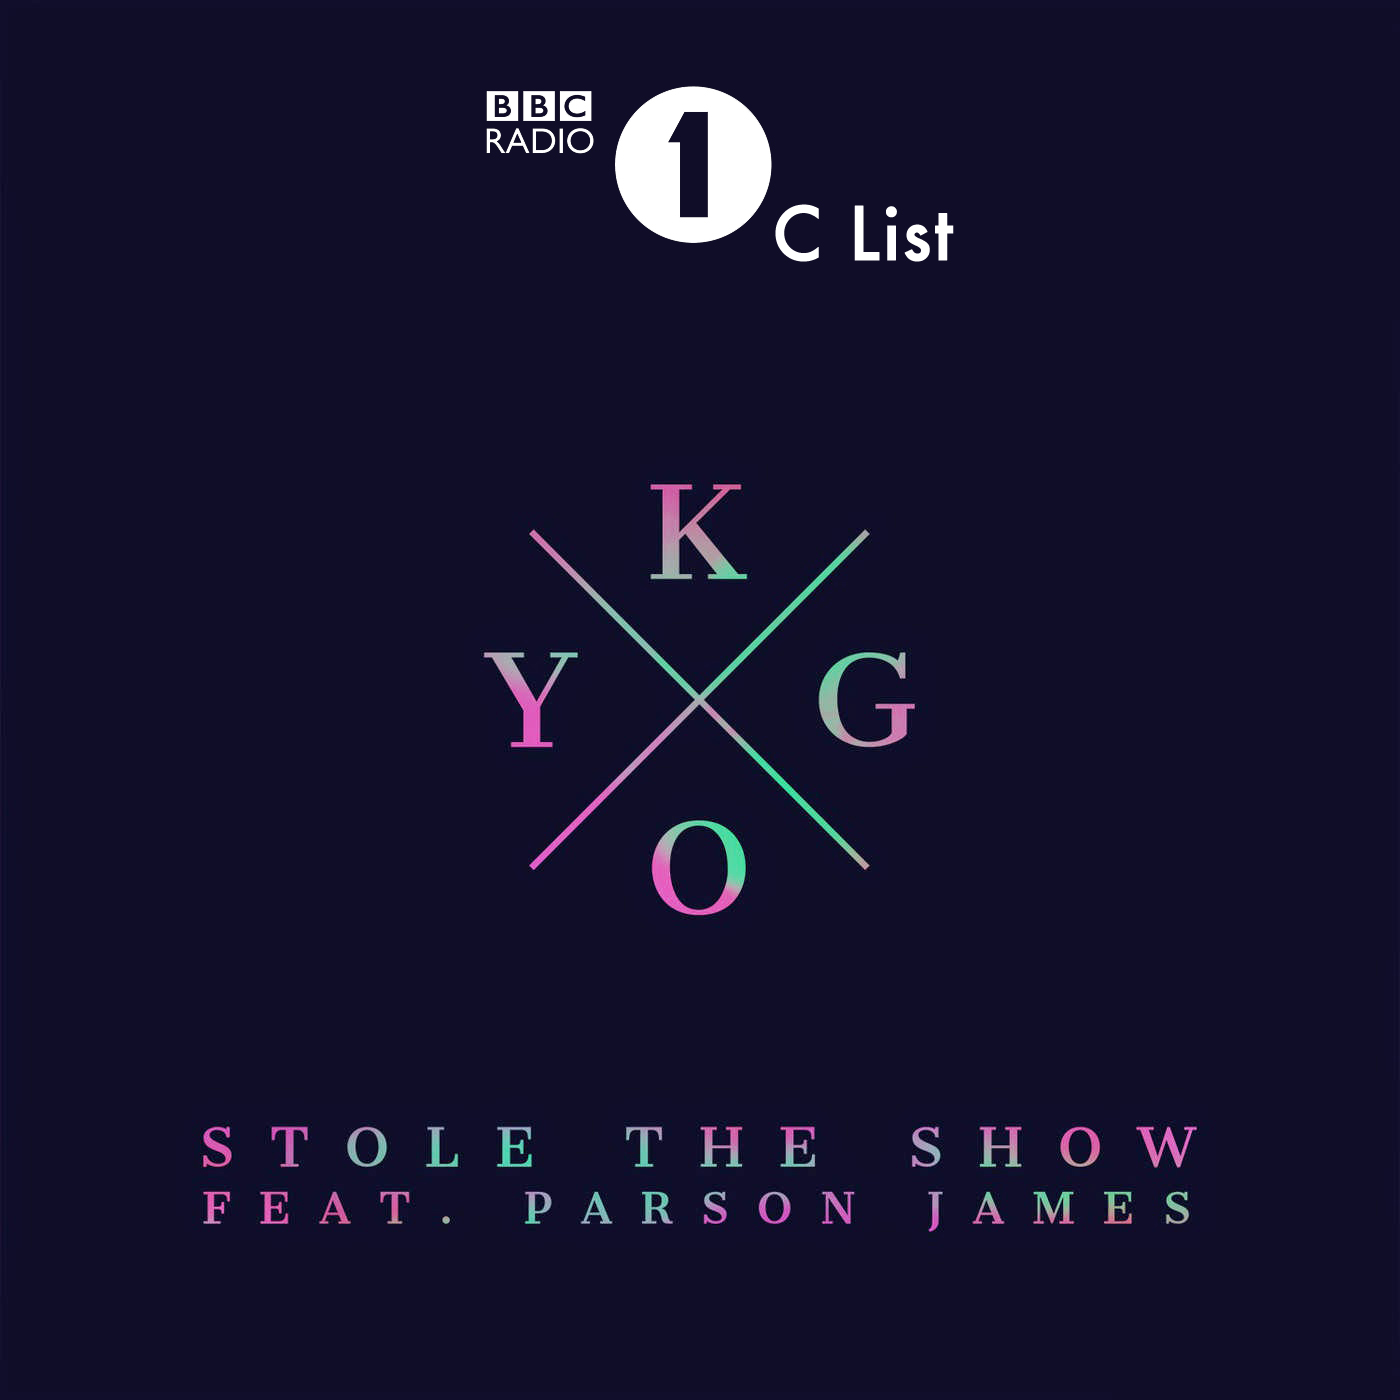 Kygo's 'Stole The Show' added to Radio 1 playlist